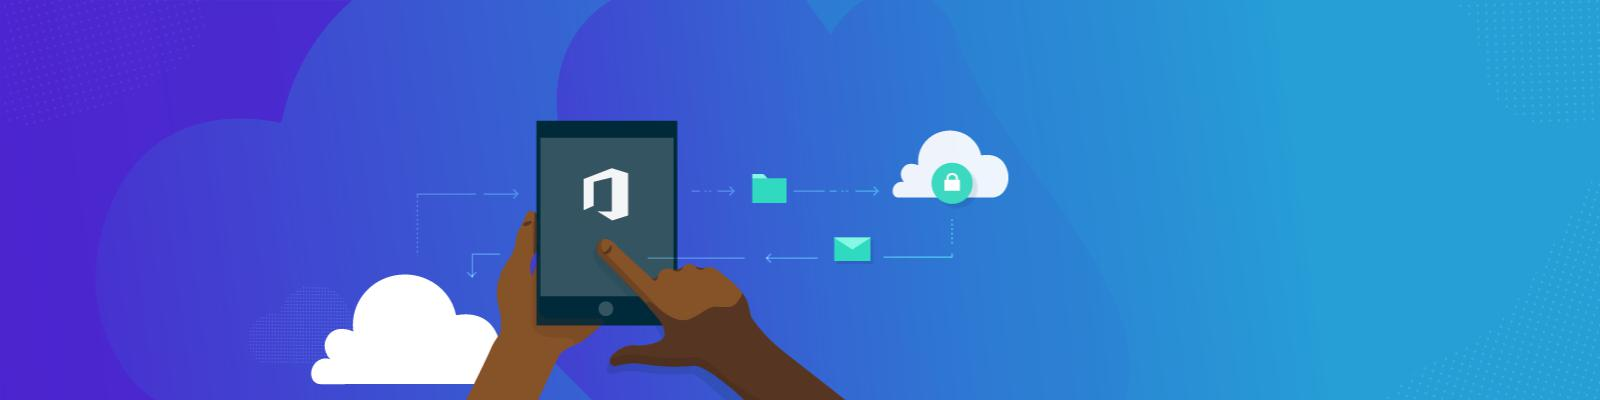 Automatic SharePoint Site Backup in SaaS Protection for Office 365